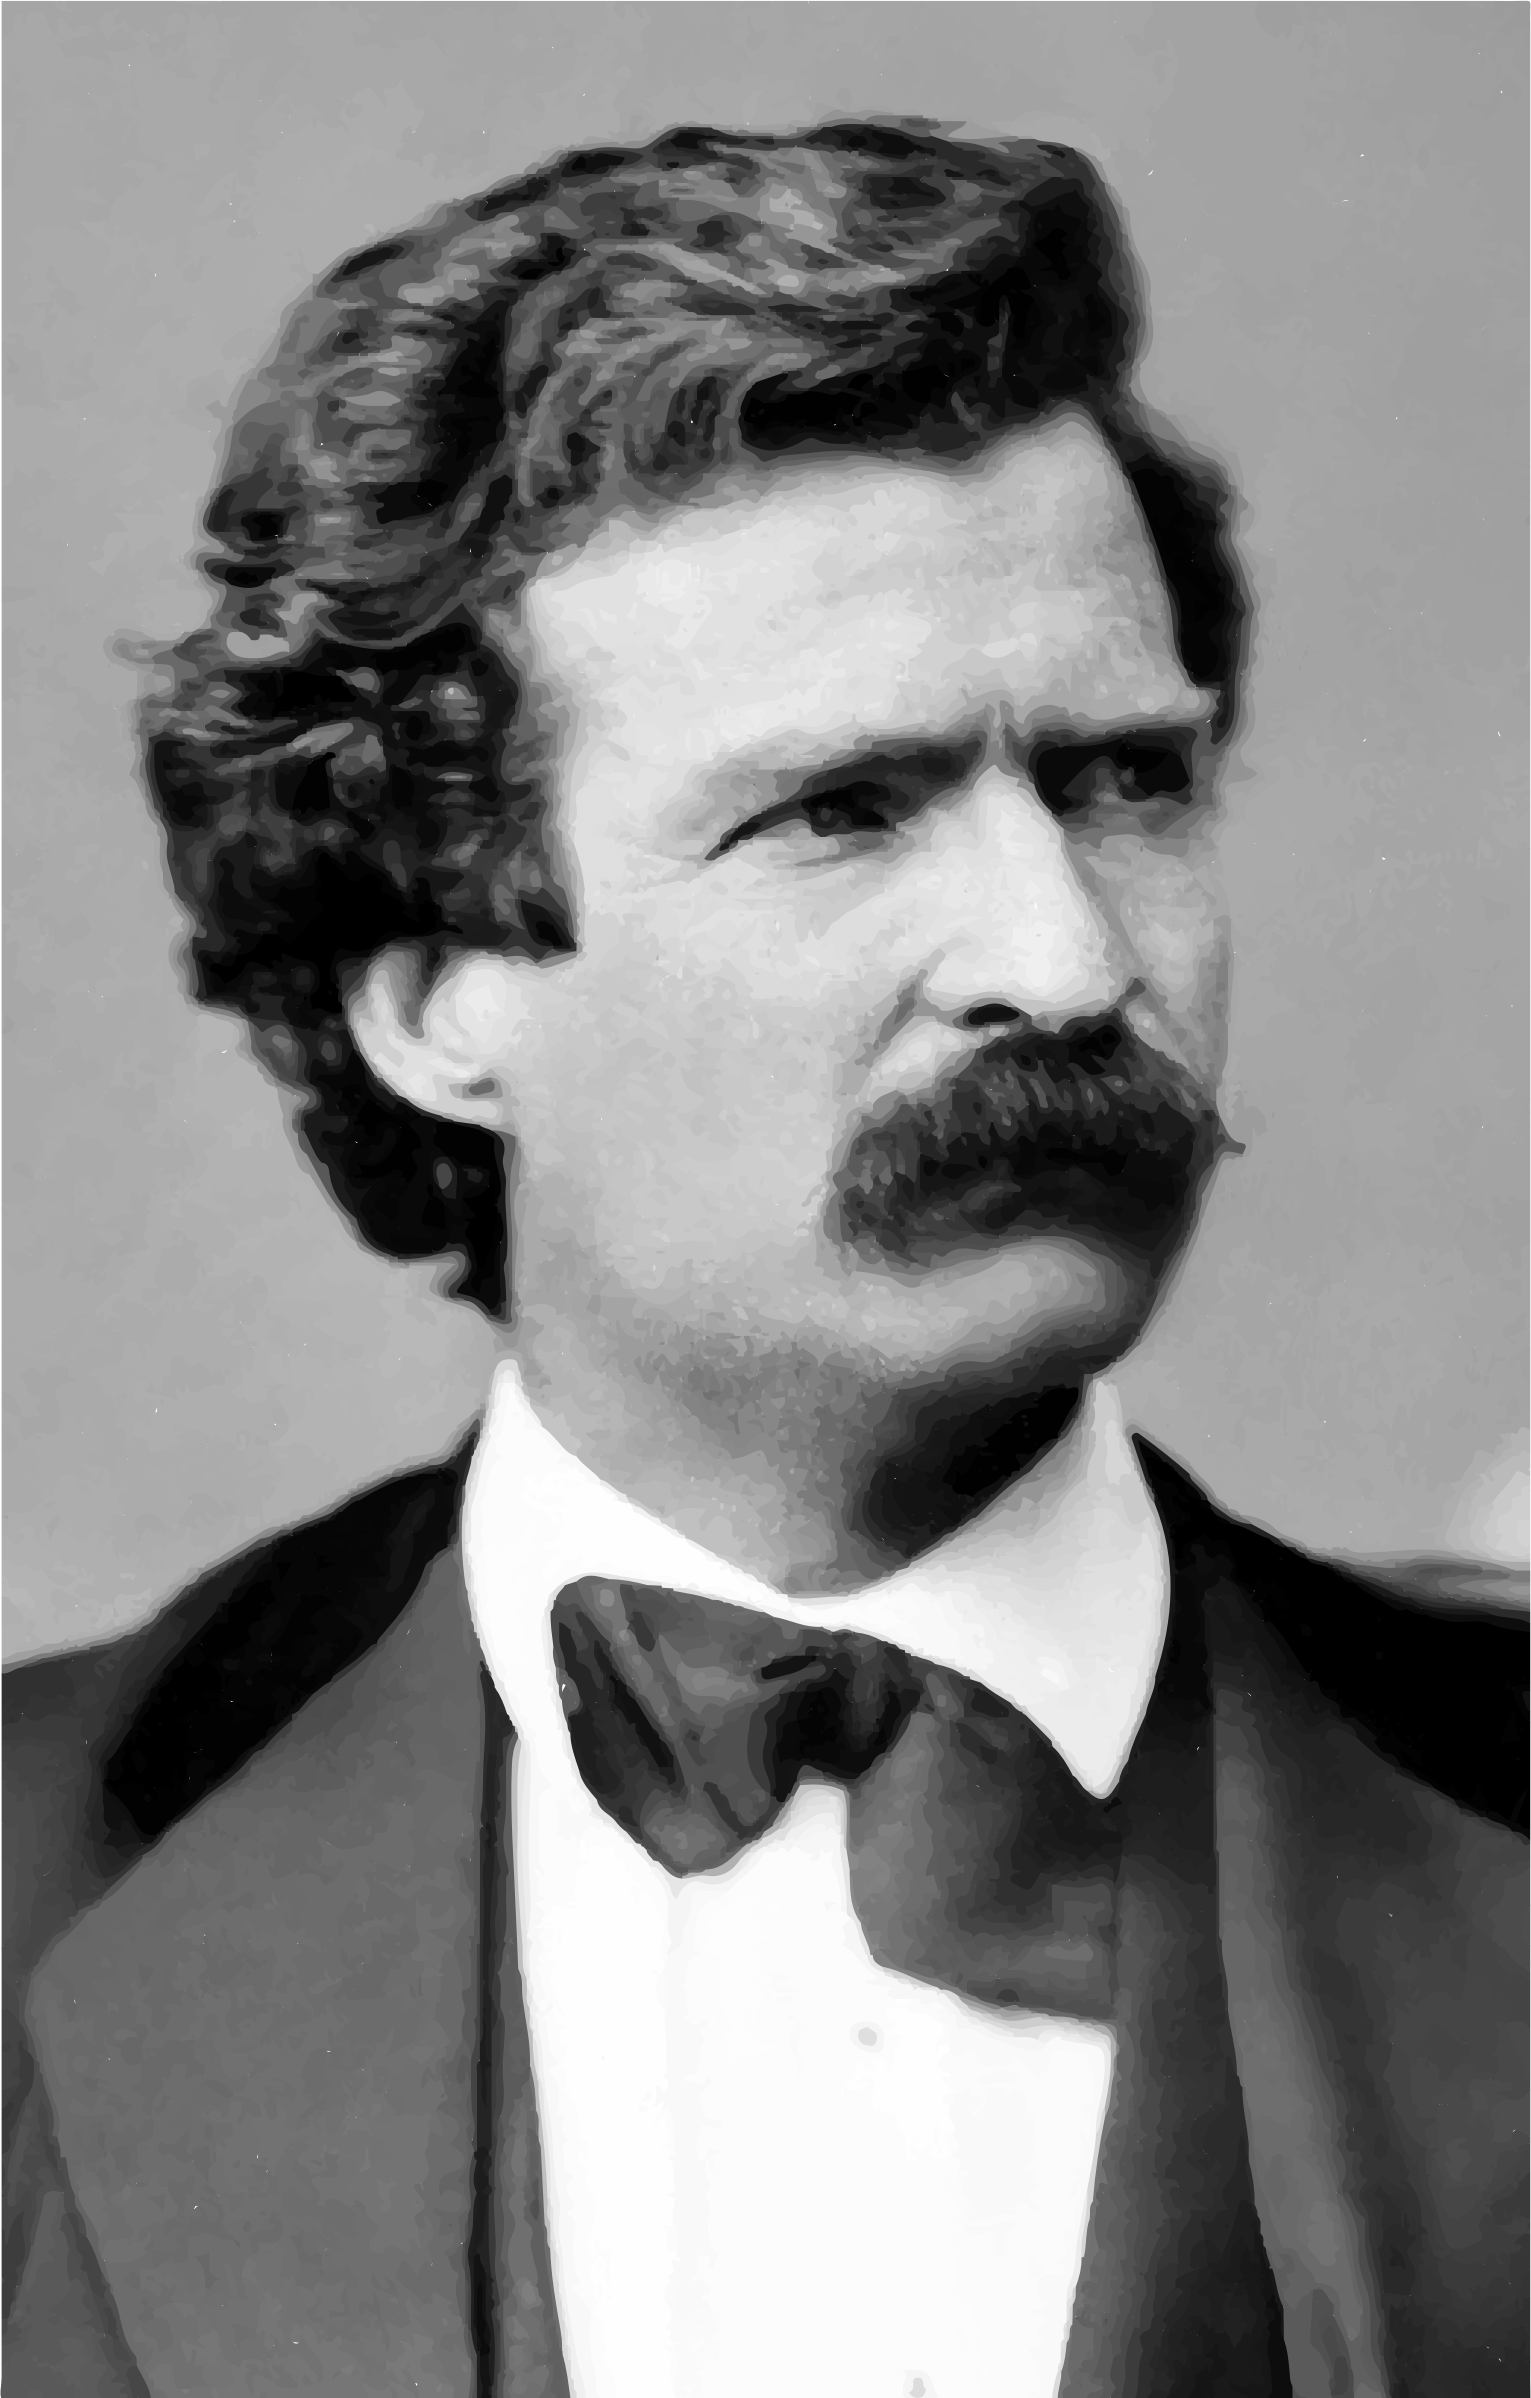 Young Mark Twain Portrait Feb 7 1871 by GDJ